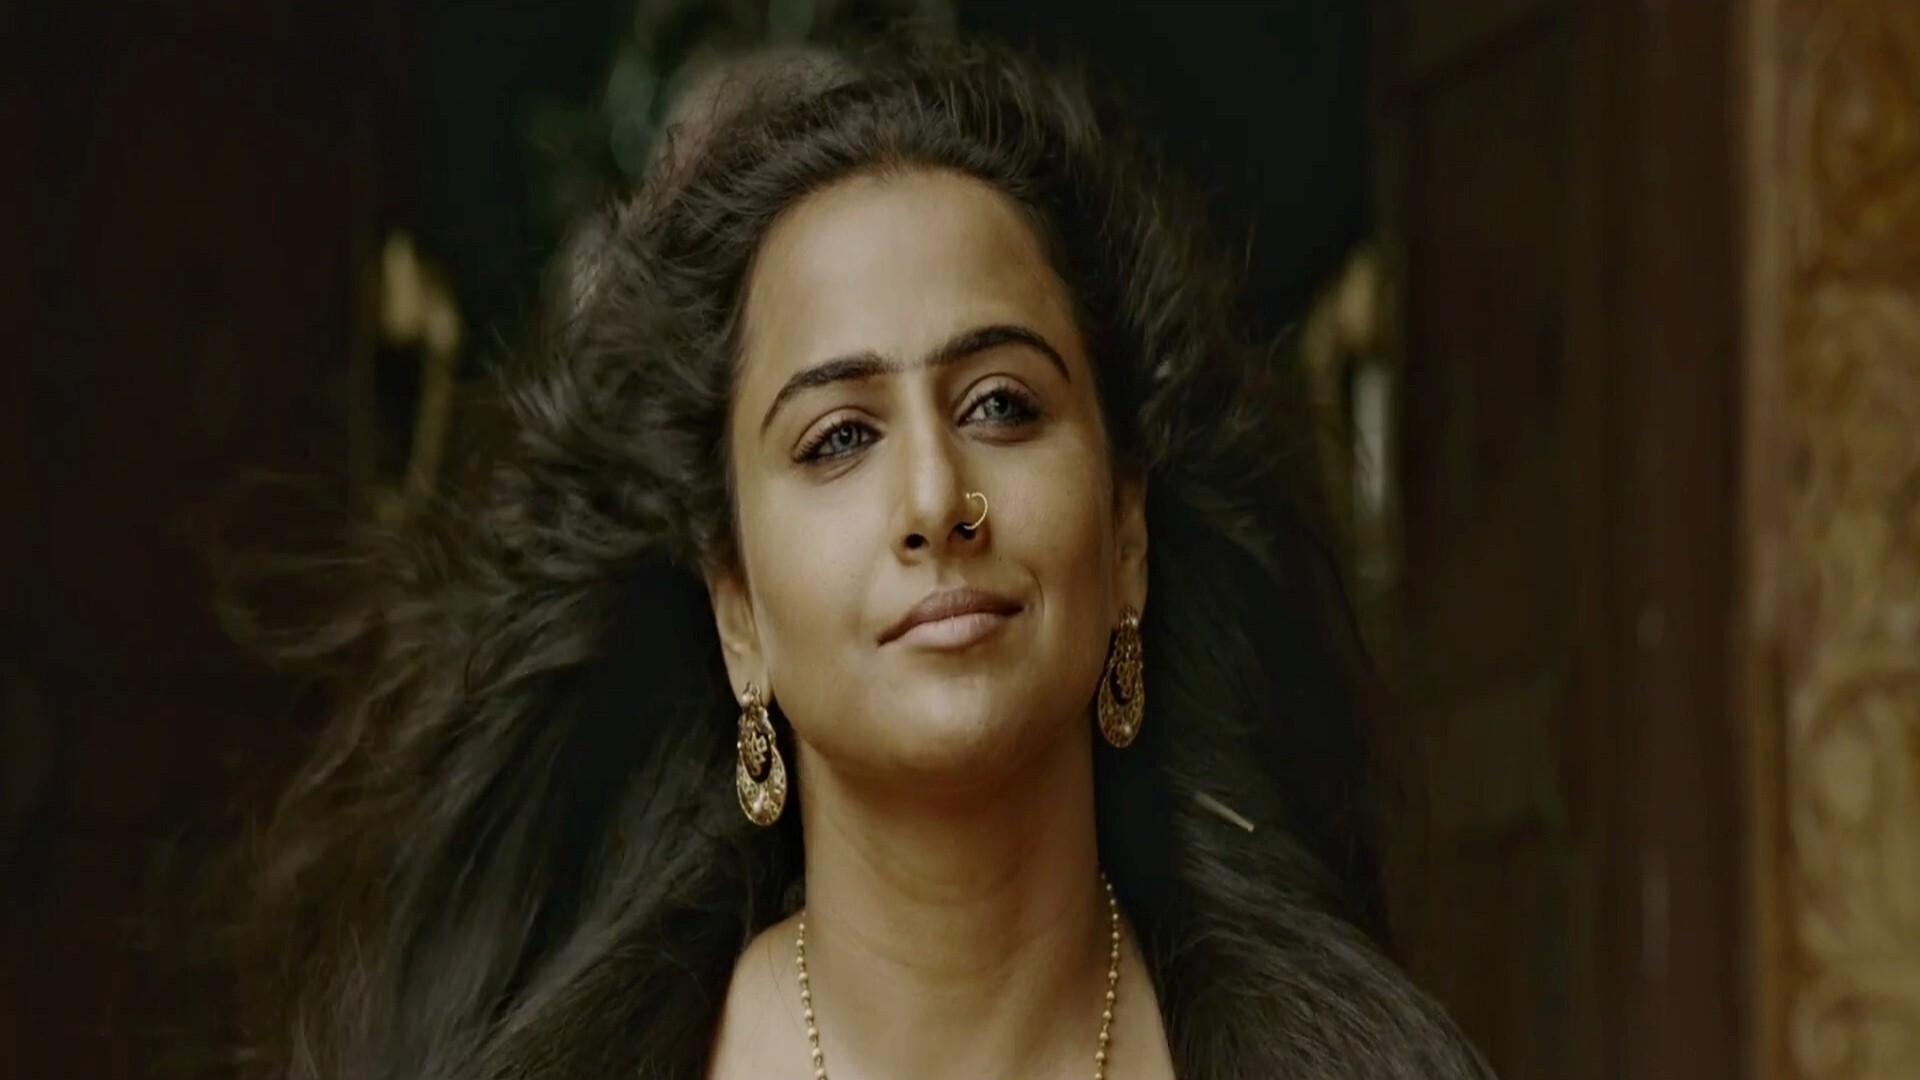 Vidya Balan In Hindi Film Begum Jaan Hd Wallpaper Hd